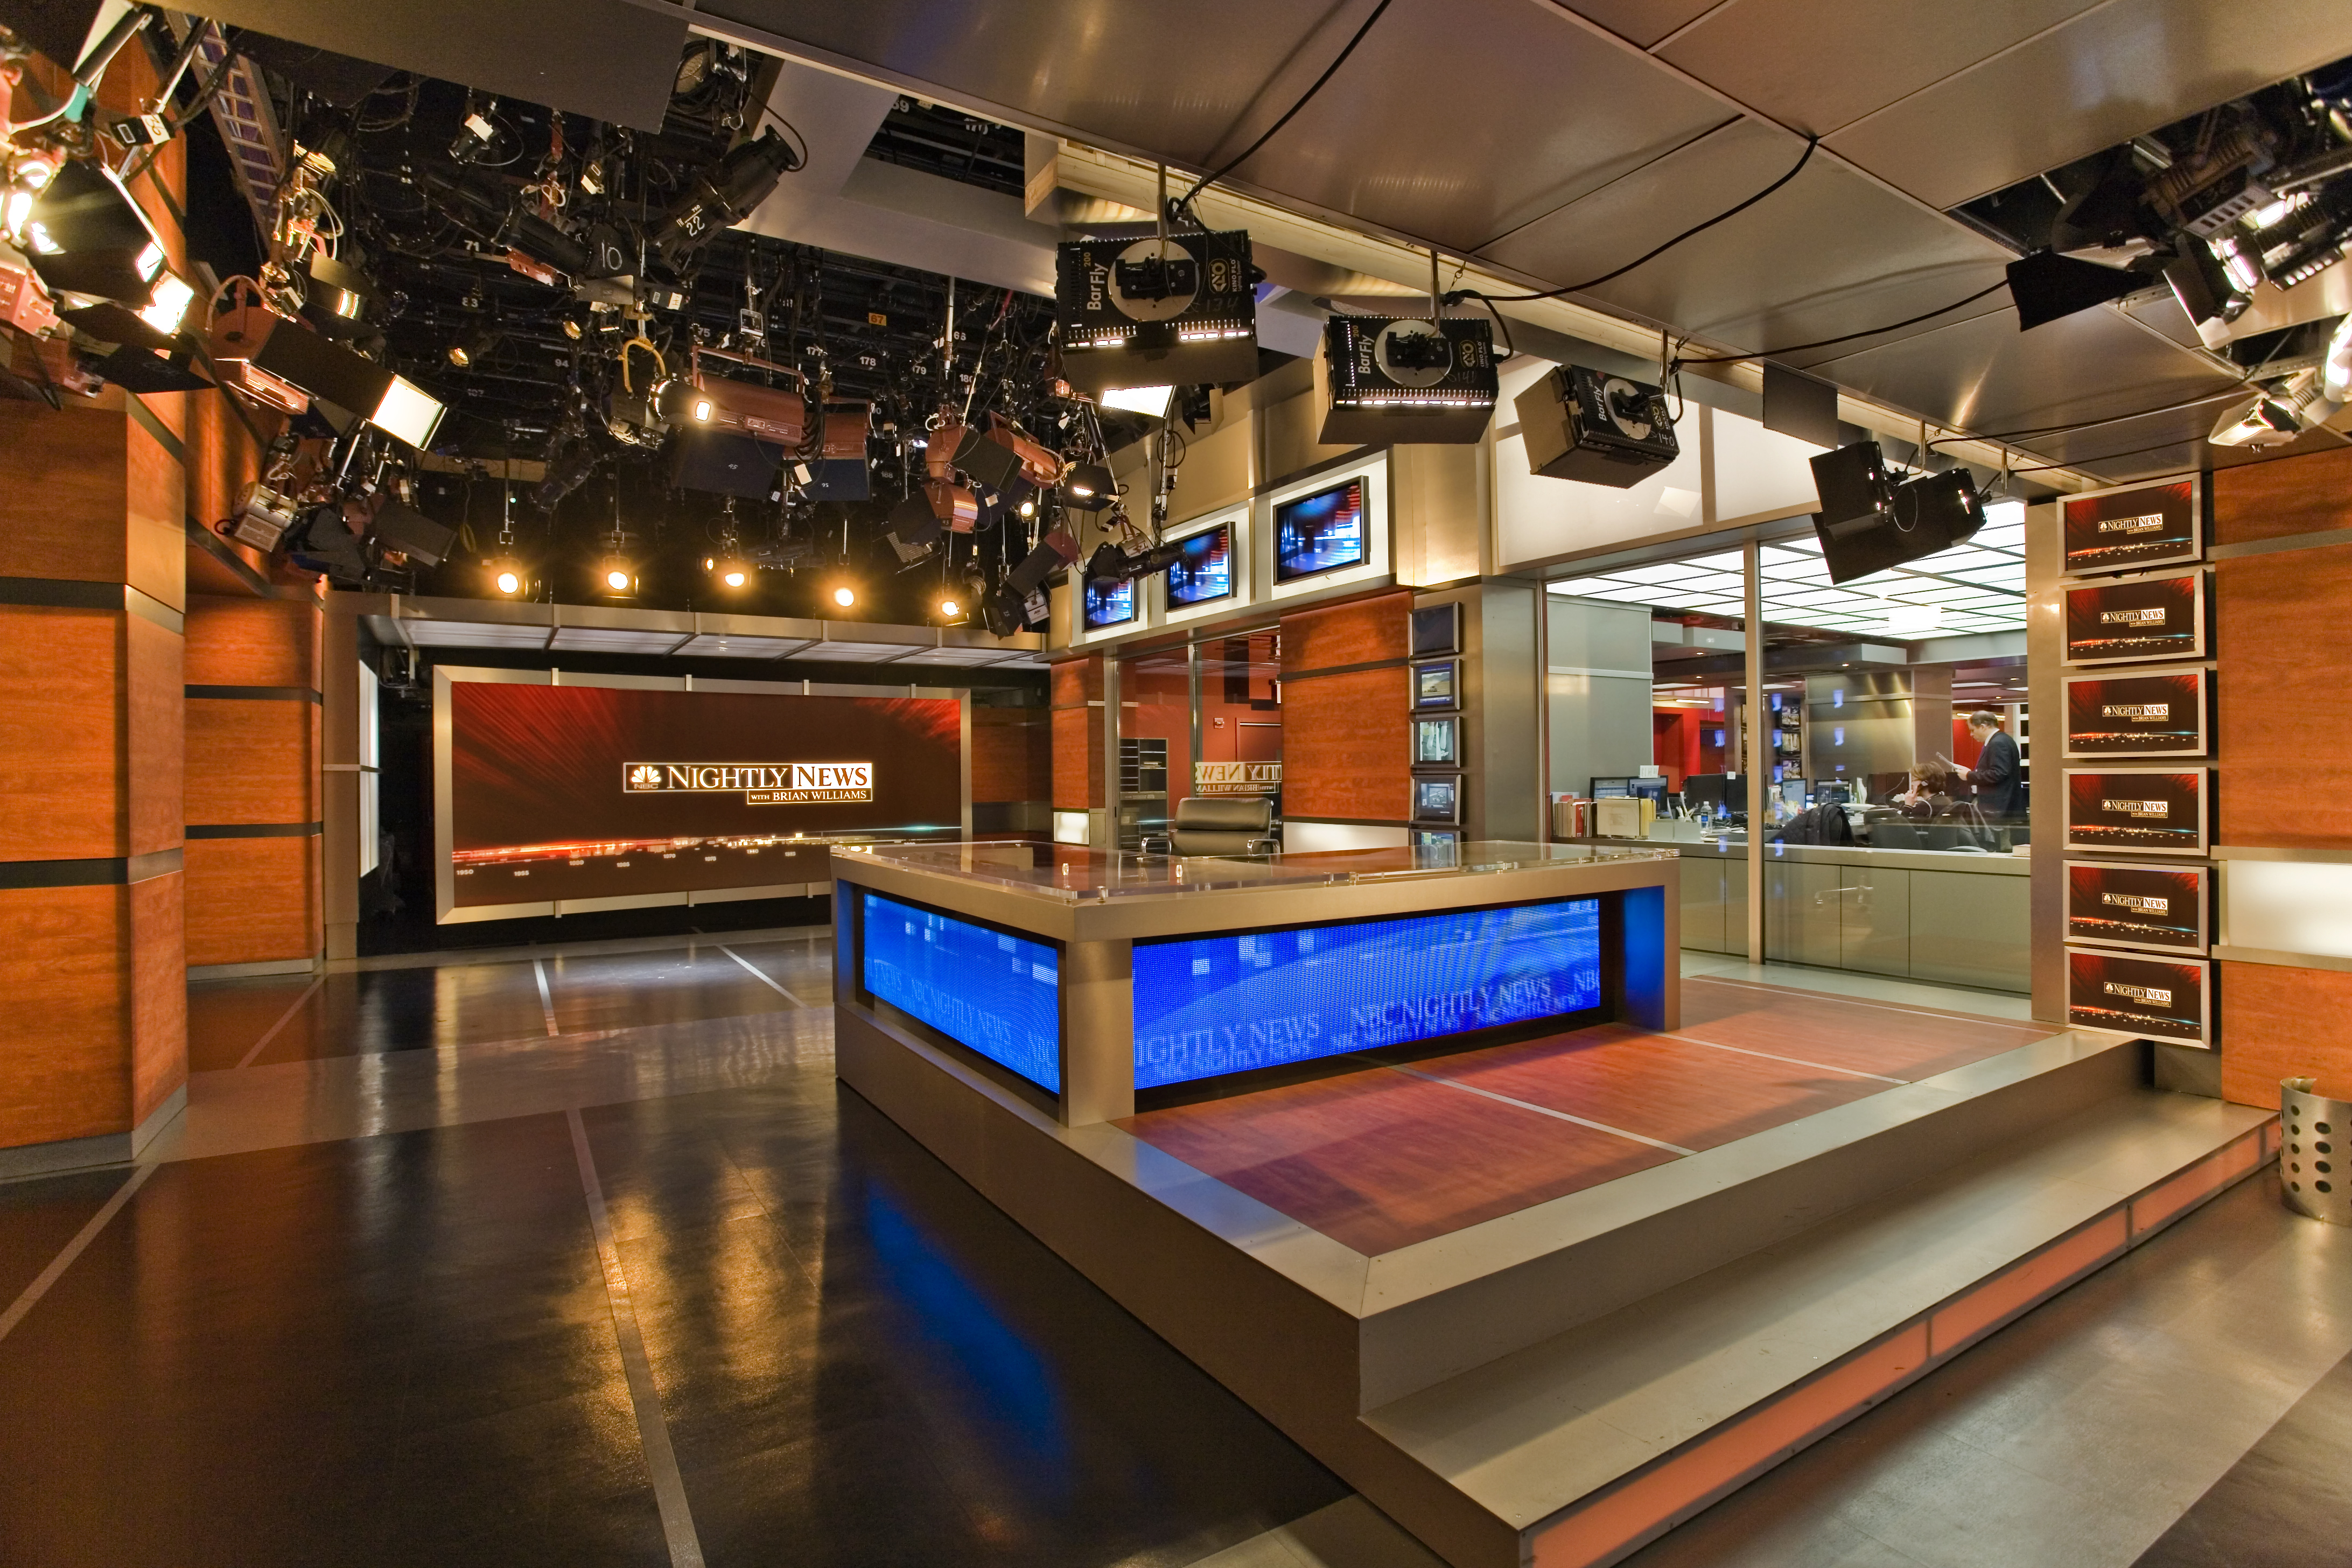 ncs_nbc-nightly-news-studio-3c-2007_0001